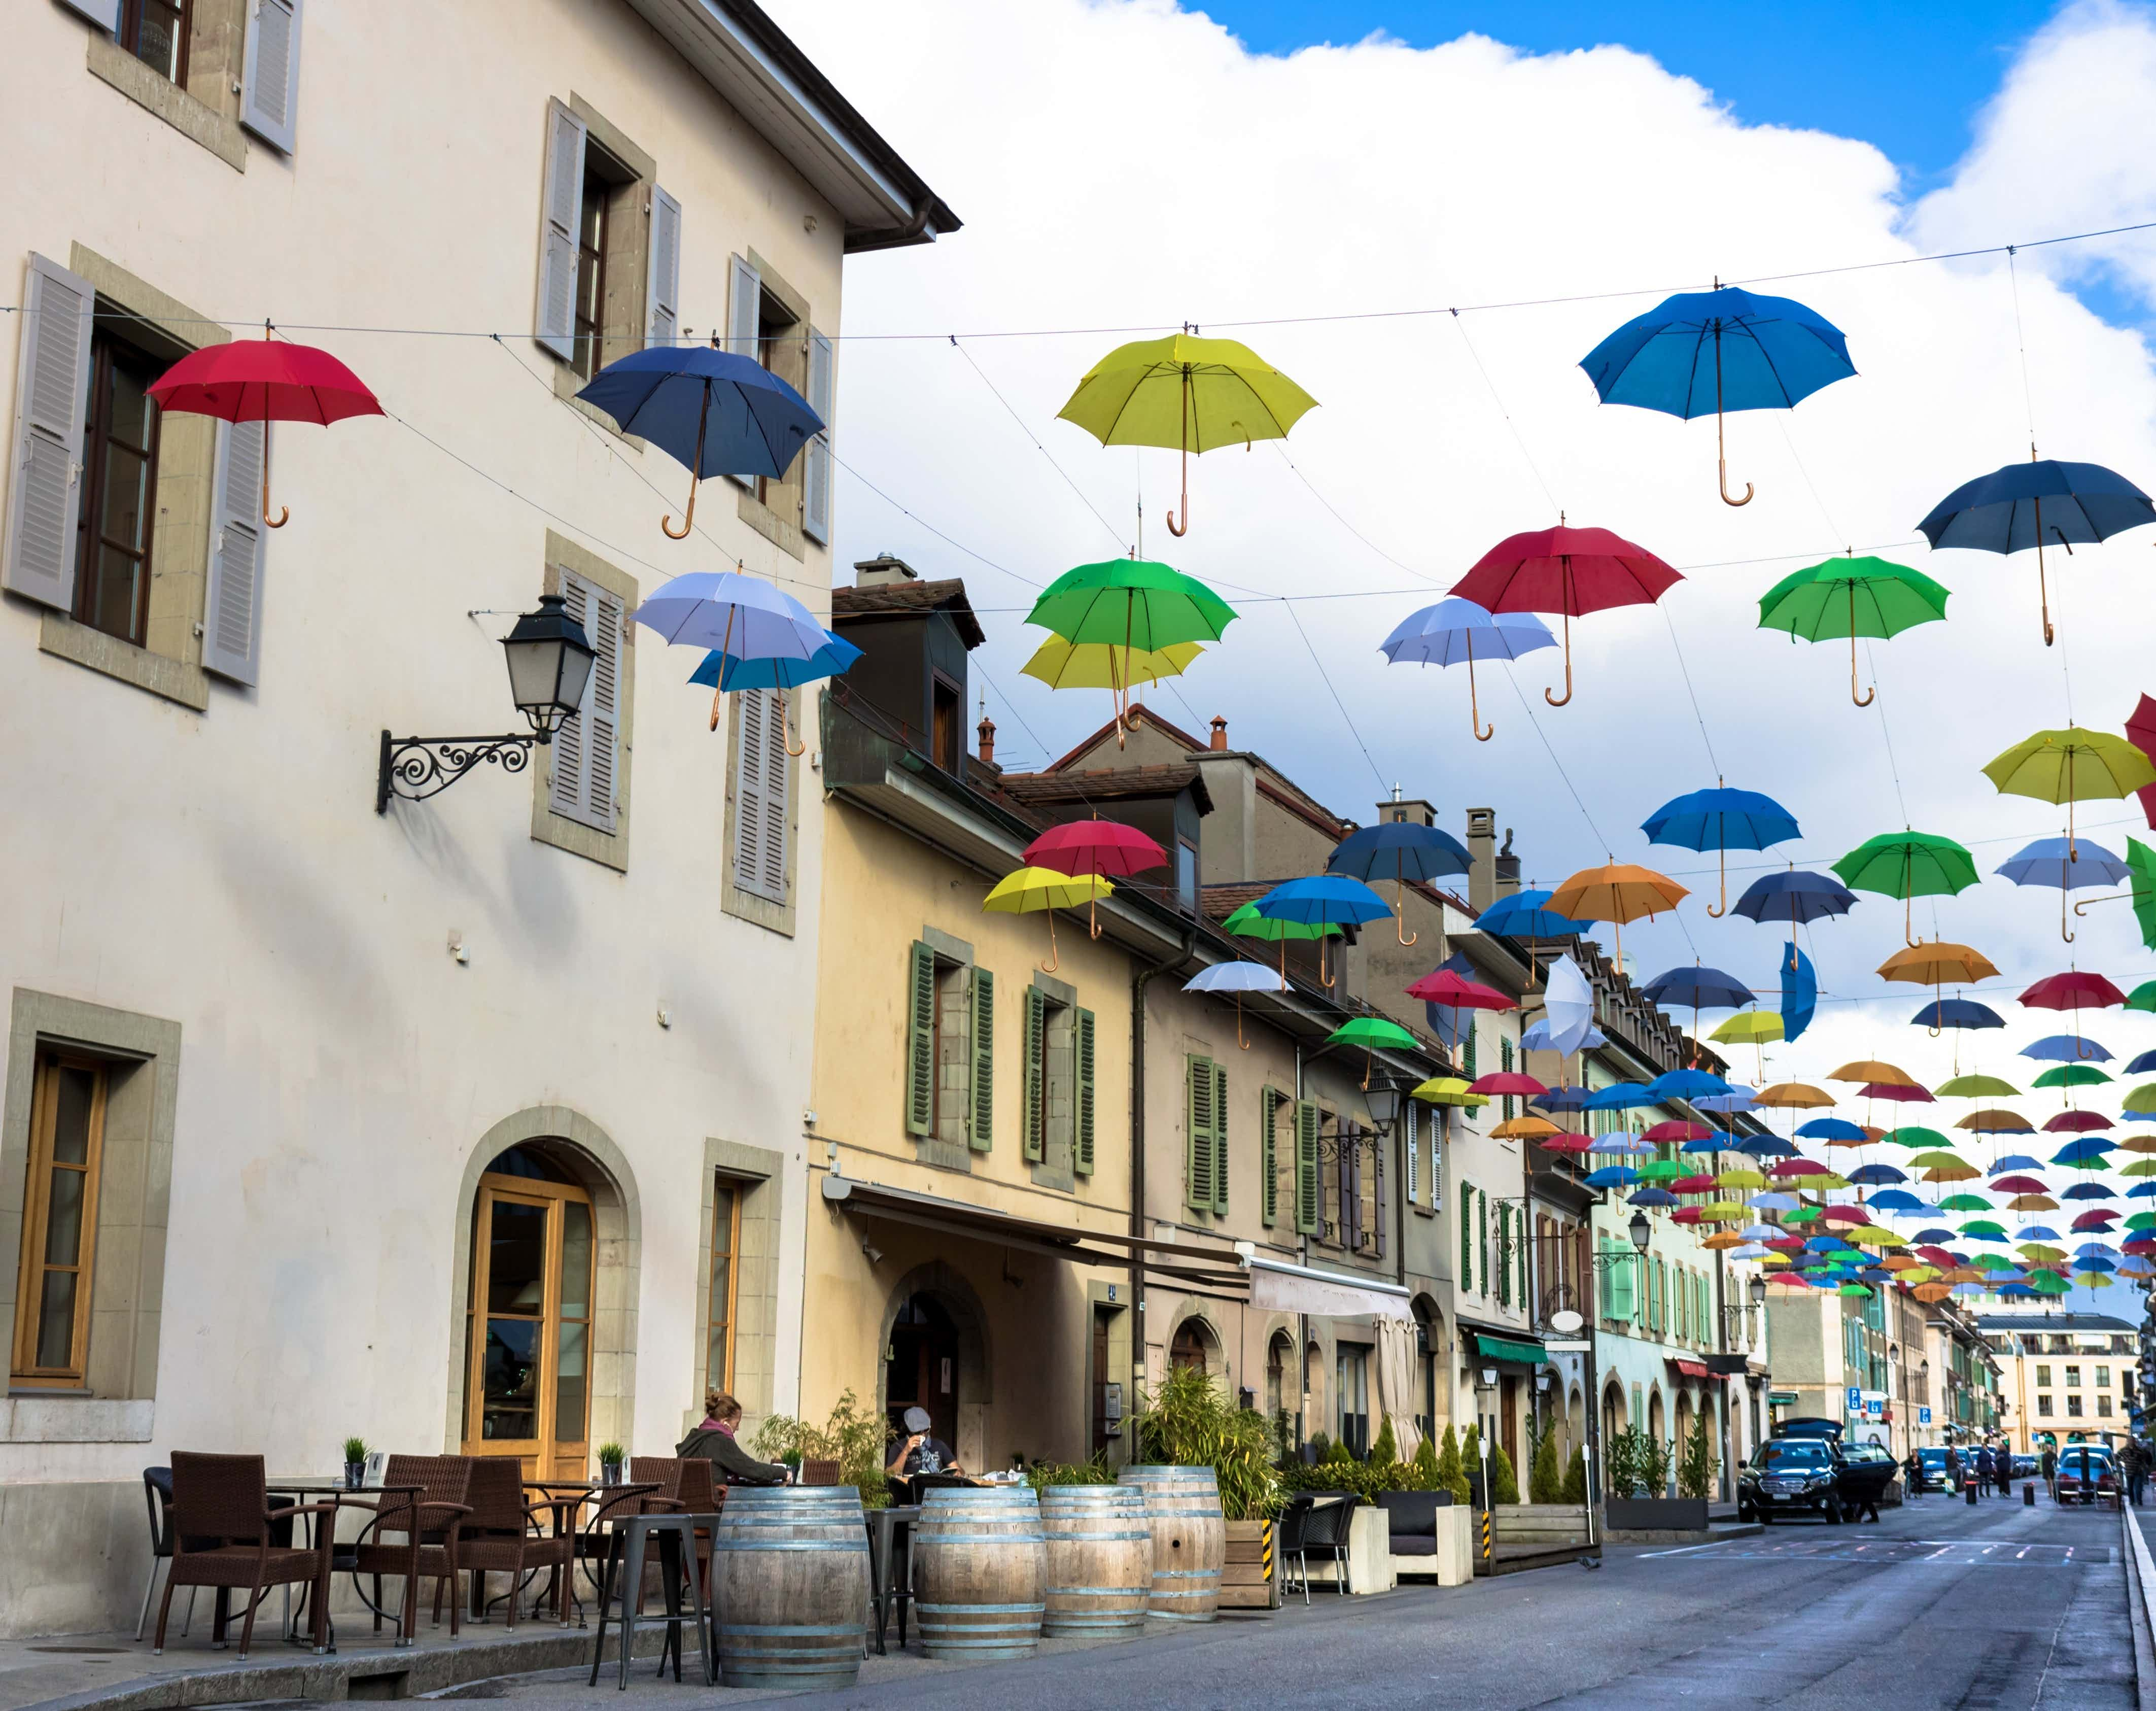 Multicolored umbrellas hang from wires above the street in the Carouge area, Geneva.